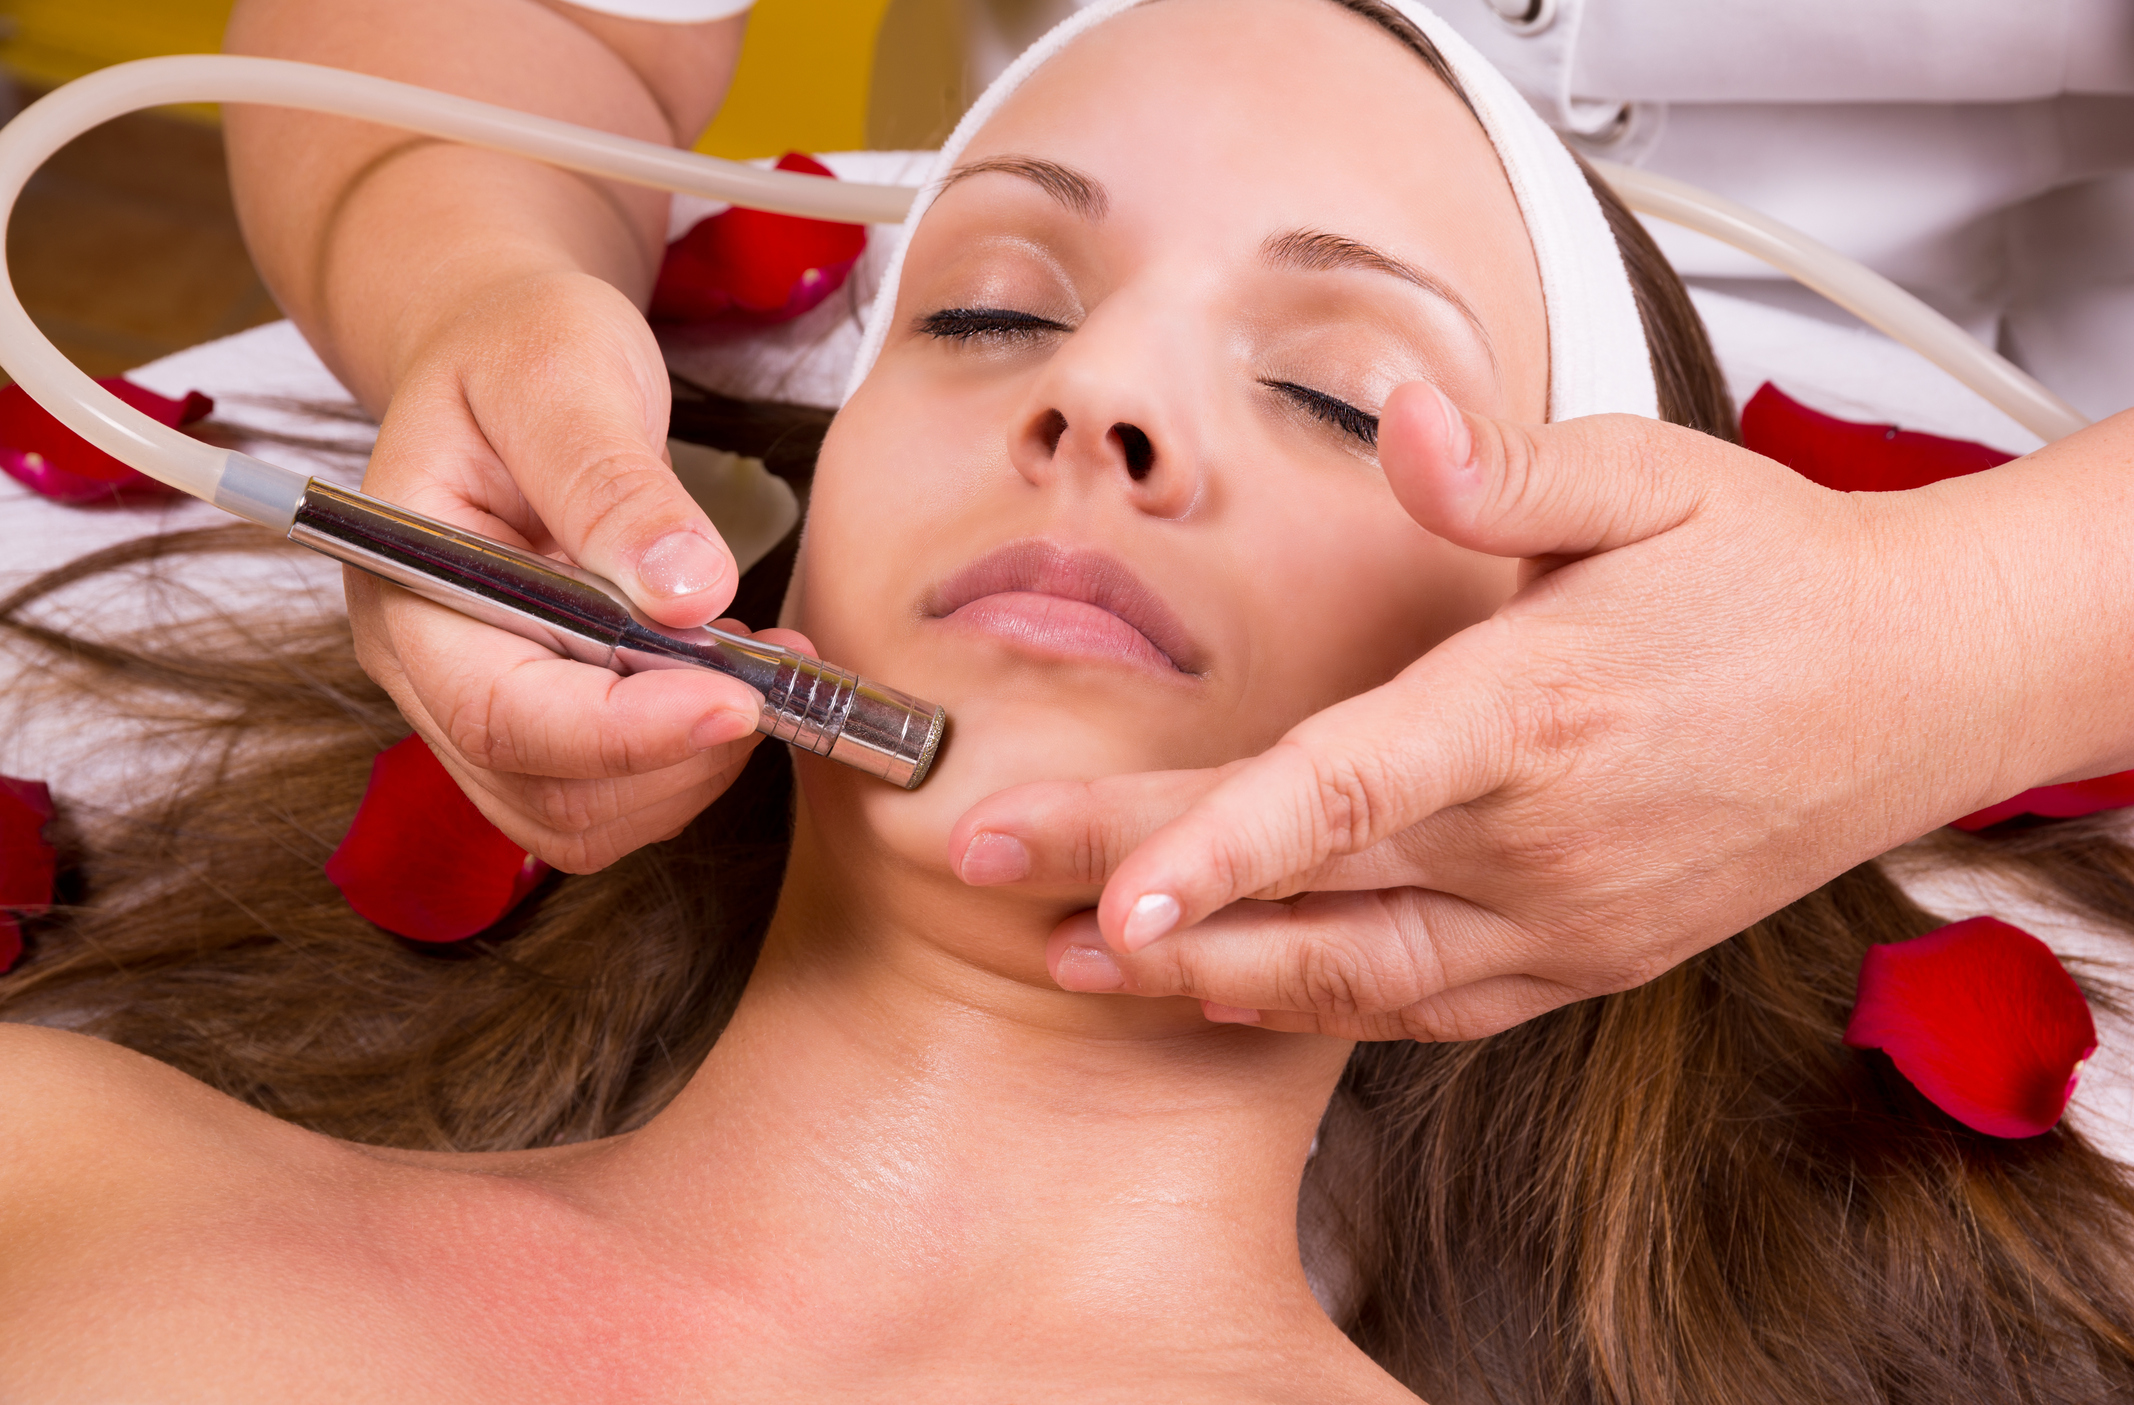 Microdermabrasion Facial - Need a treatment that targets wrinkles, acne scars, large pores, age spots and uneven skin tone?This relaxing yet invigorating facial exfoliates and removes the superficial layers of dry, dead skin cells to reveal younger, healthier looking skin.We use the best technology that helps speed up the skin renewal process by light therapy, exfoliation and vacuuming. Ideal pre-IPL (photo facial) treatment $150